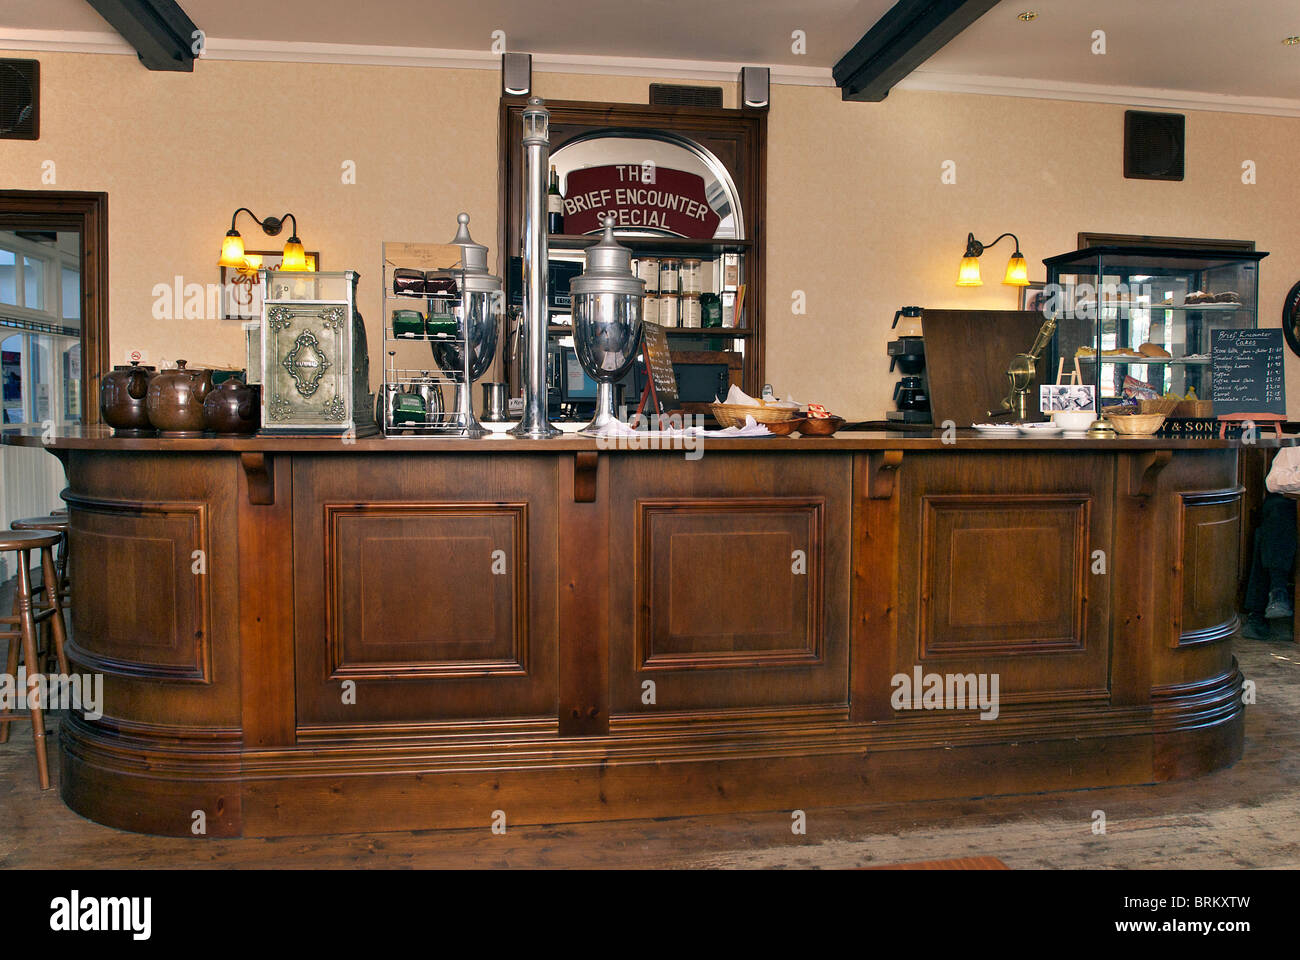 The Brief Encounter Special cafe bar at Carnforth station near Lancaster. Film Stock Photo